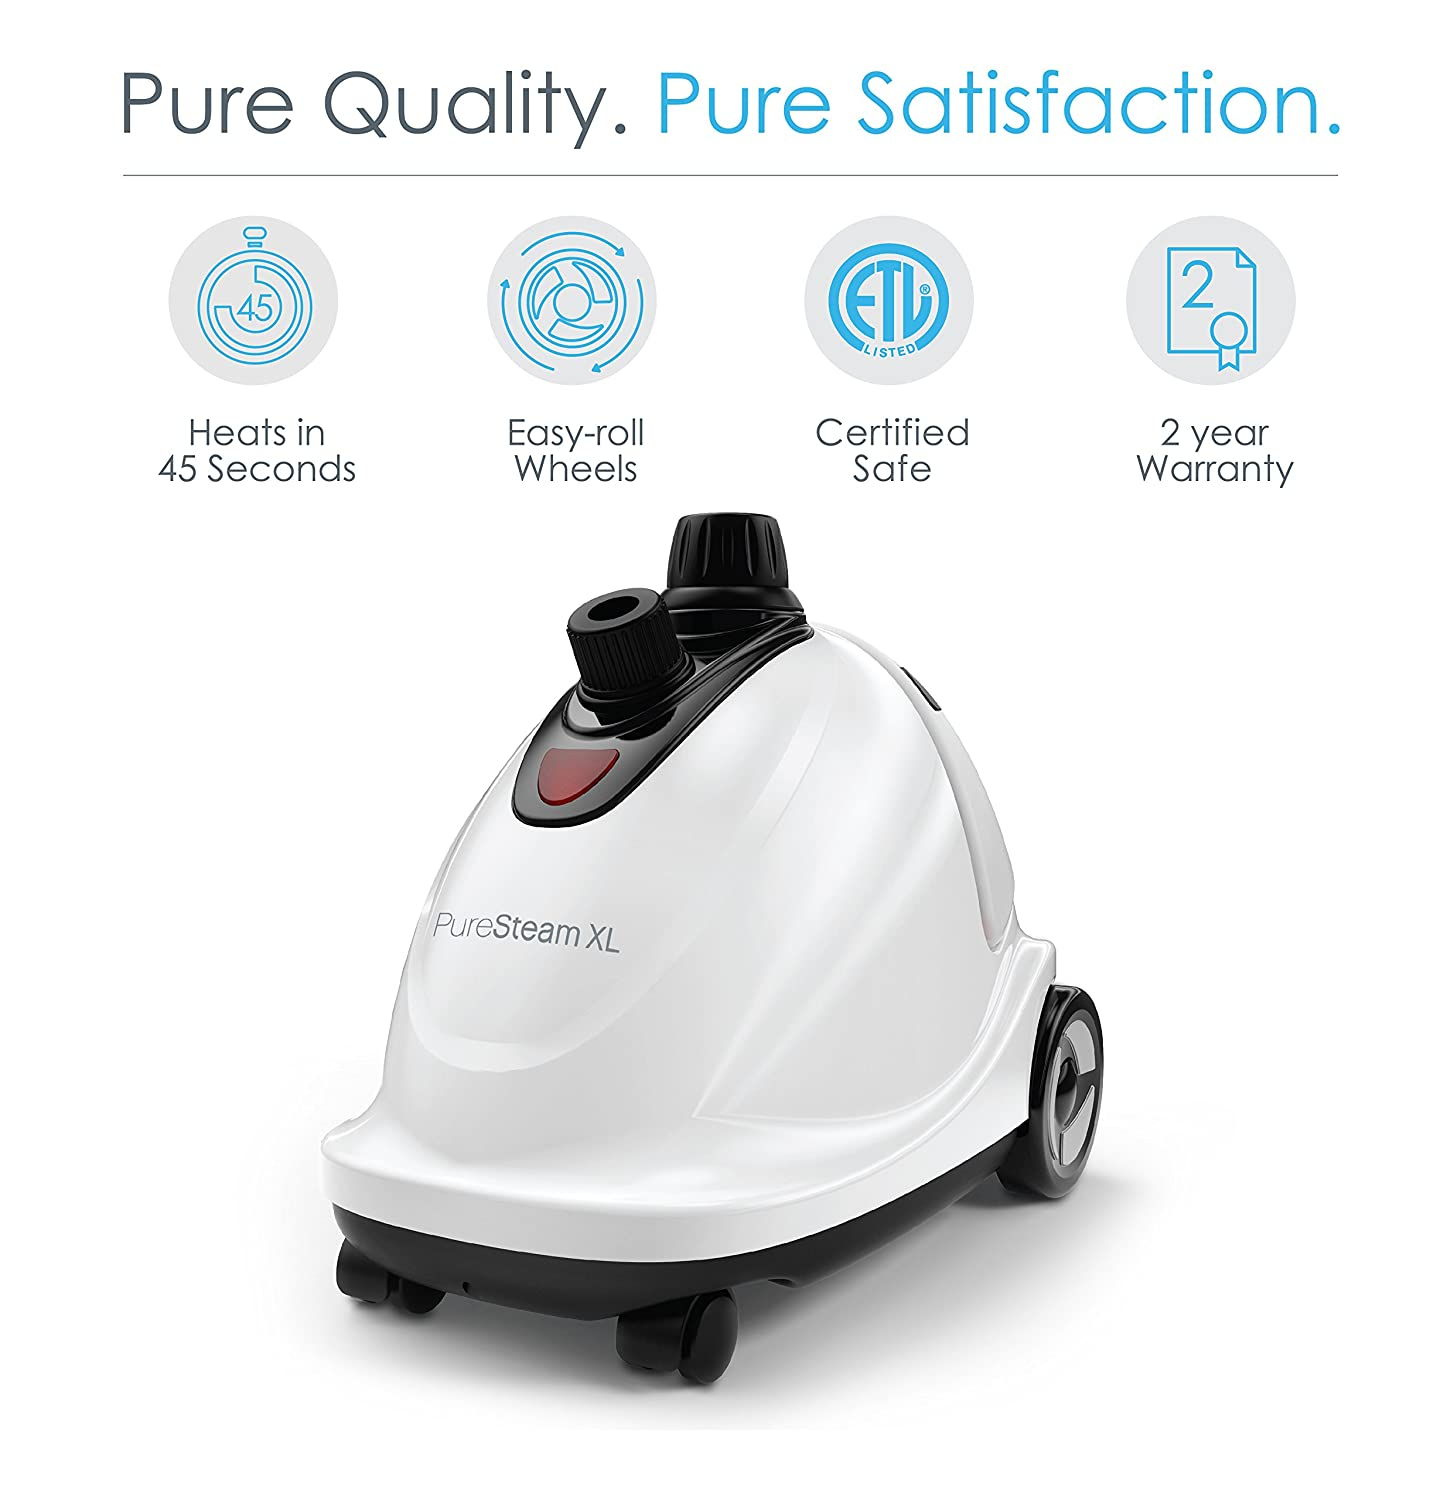 Pure Enrichment PureSteam XL Standing Fast-Heating, 1500-Watt Upright Steamer with Half-Gallon Water Tank for 1 Hour Continuous Steaming-Includes Garment Hanger and Fabric, 1